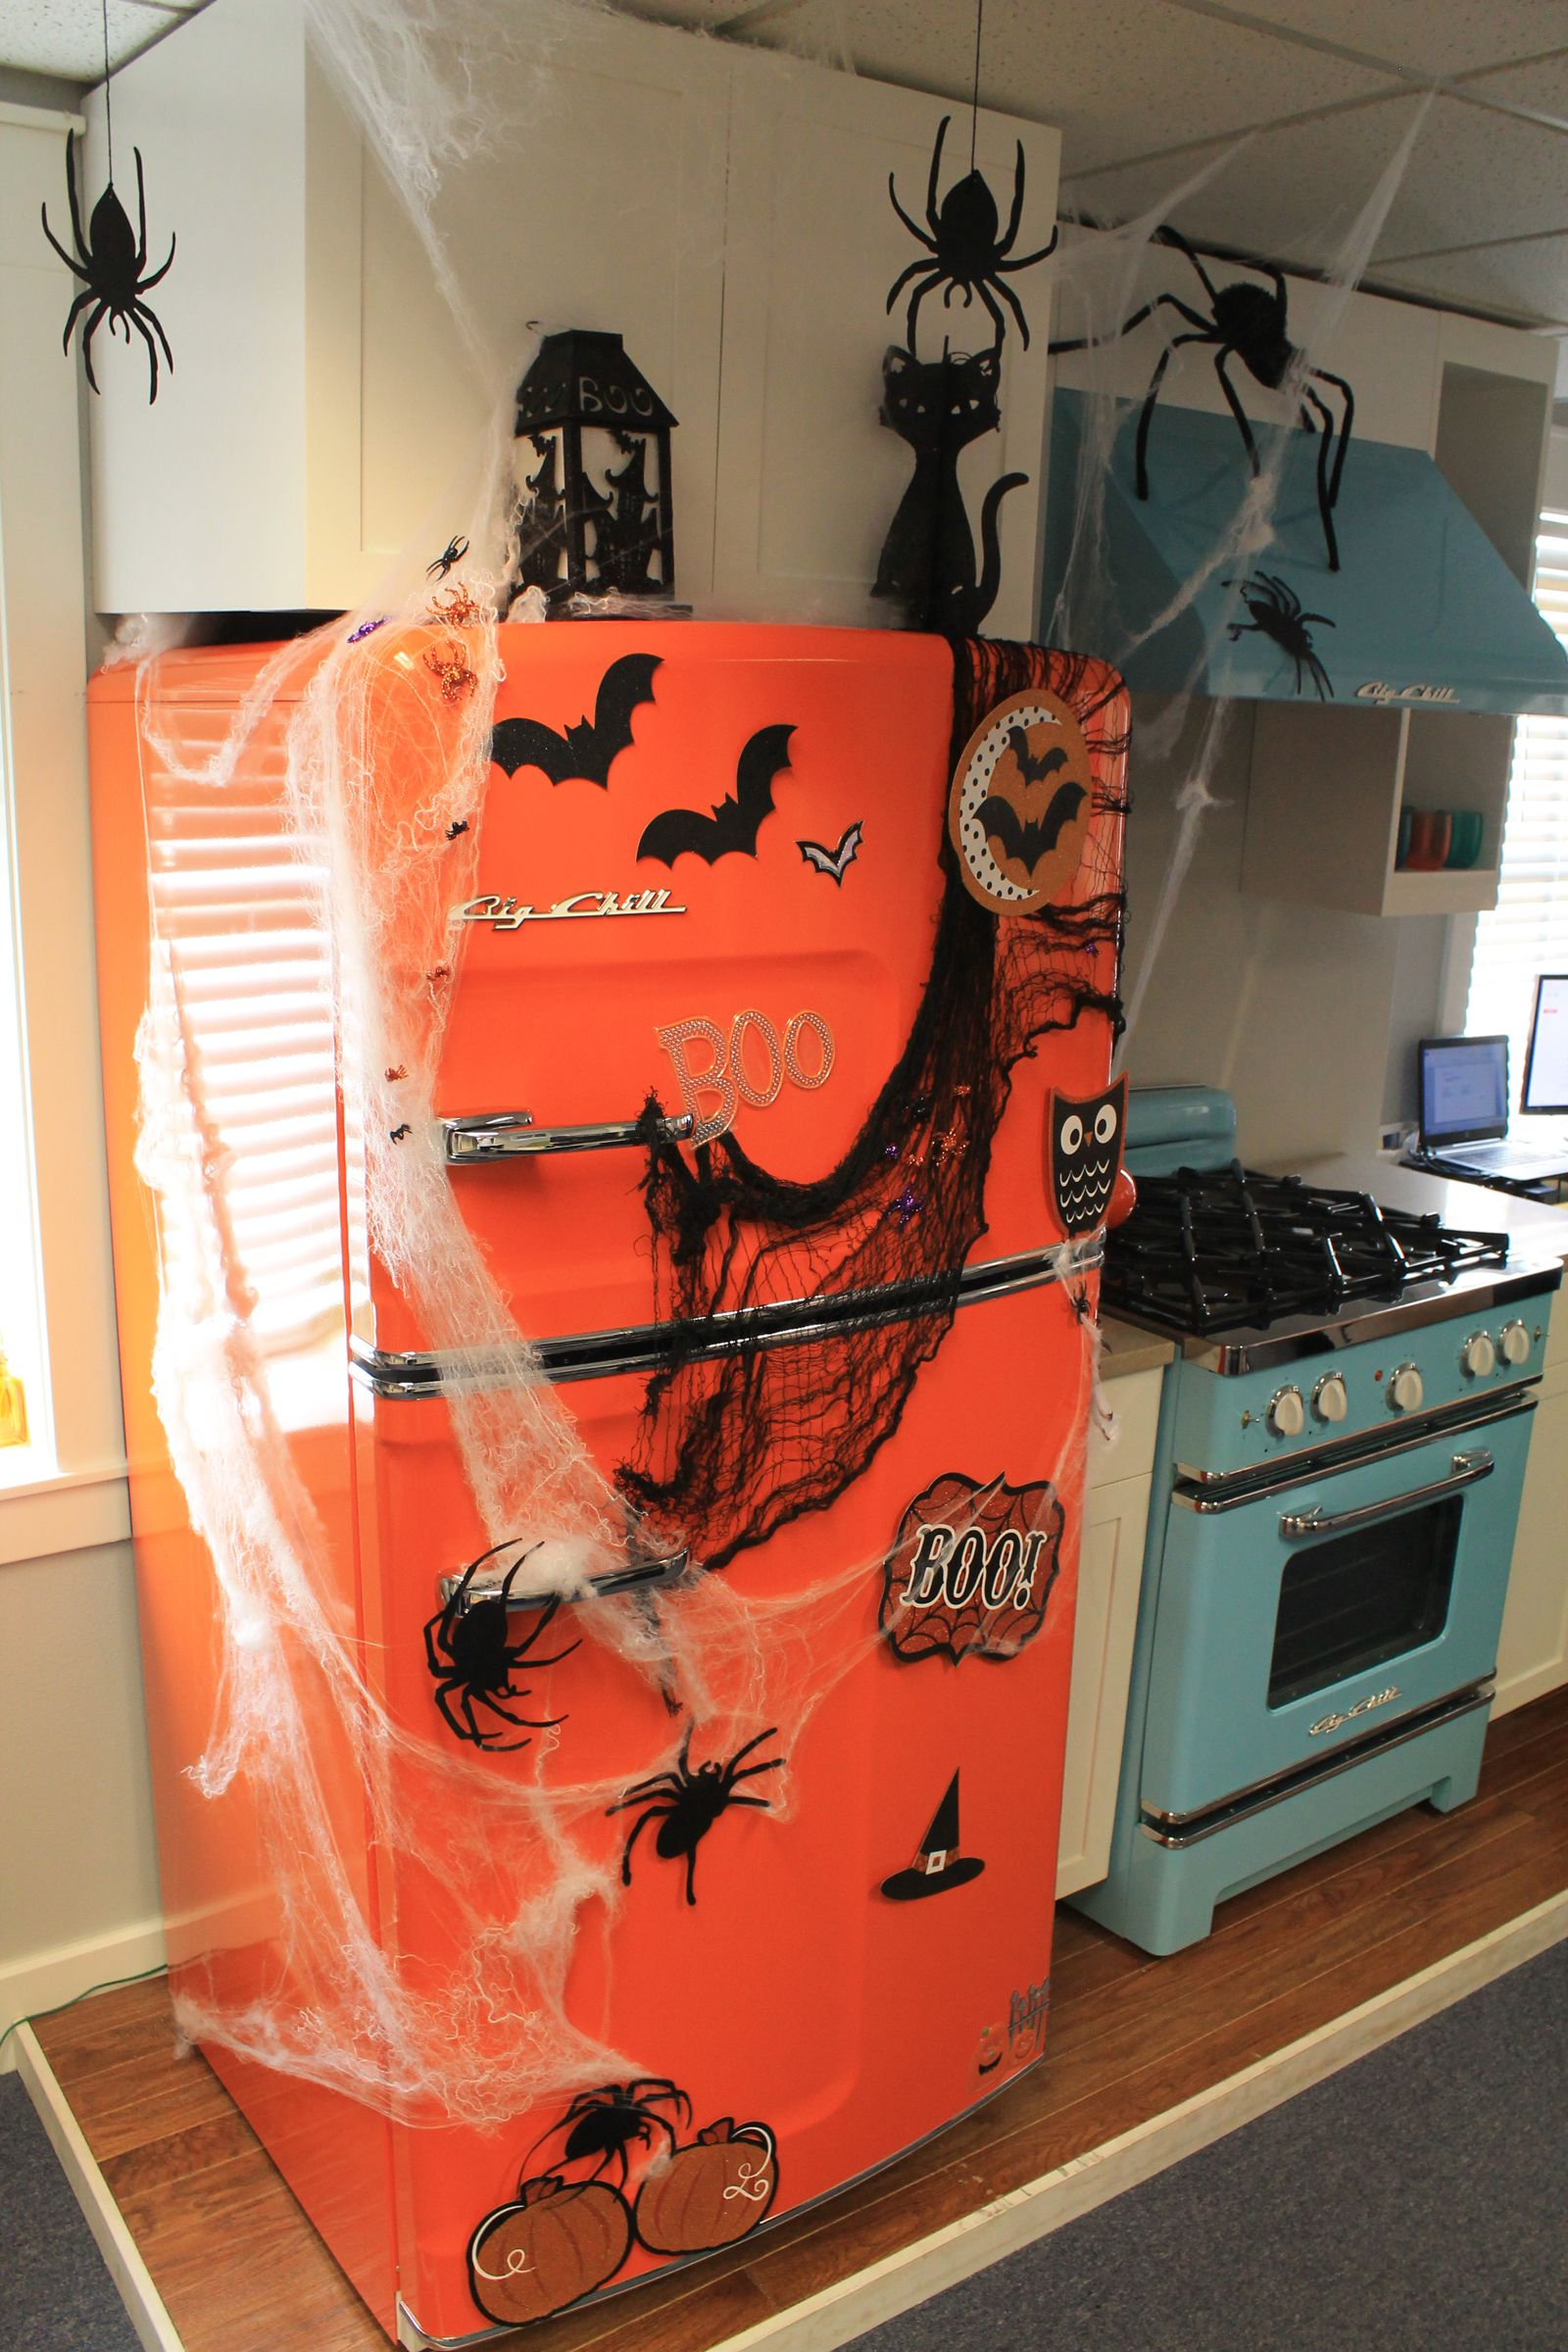 10 Creepy Decorations for Your Halloween Kitchen